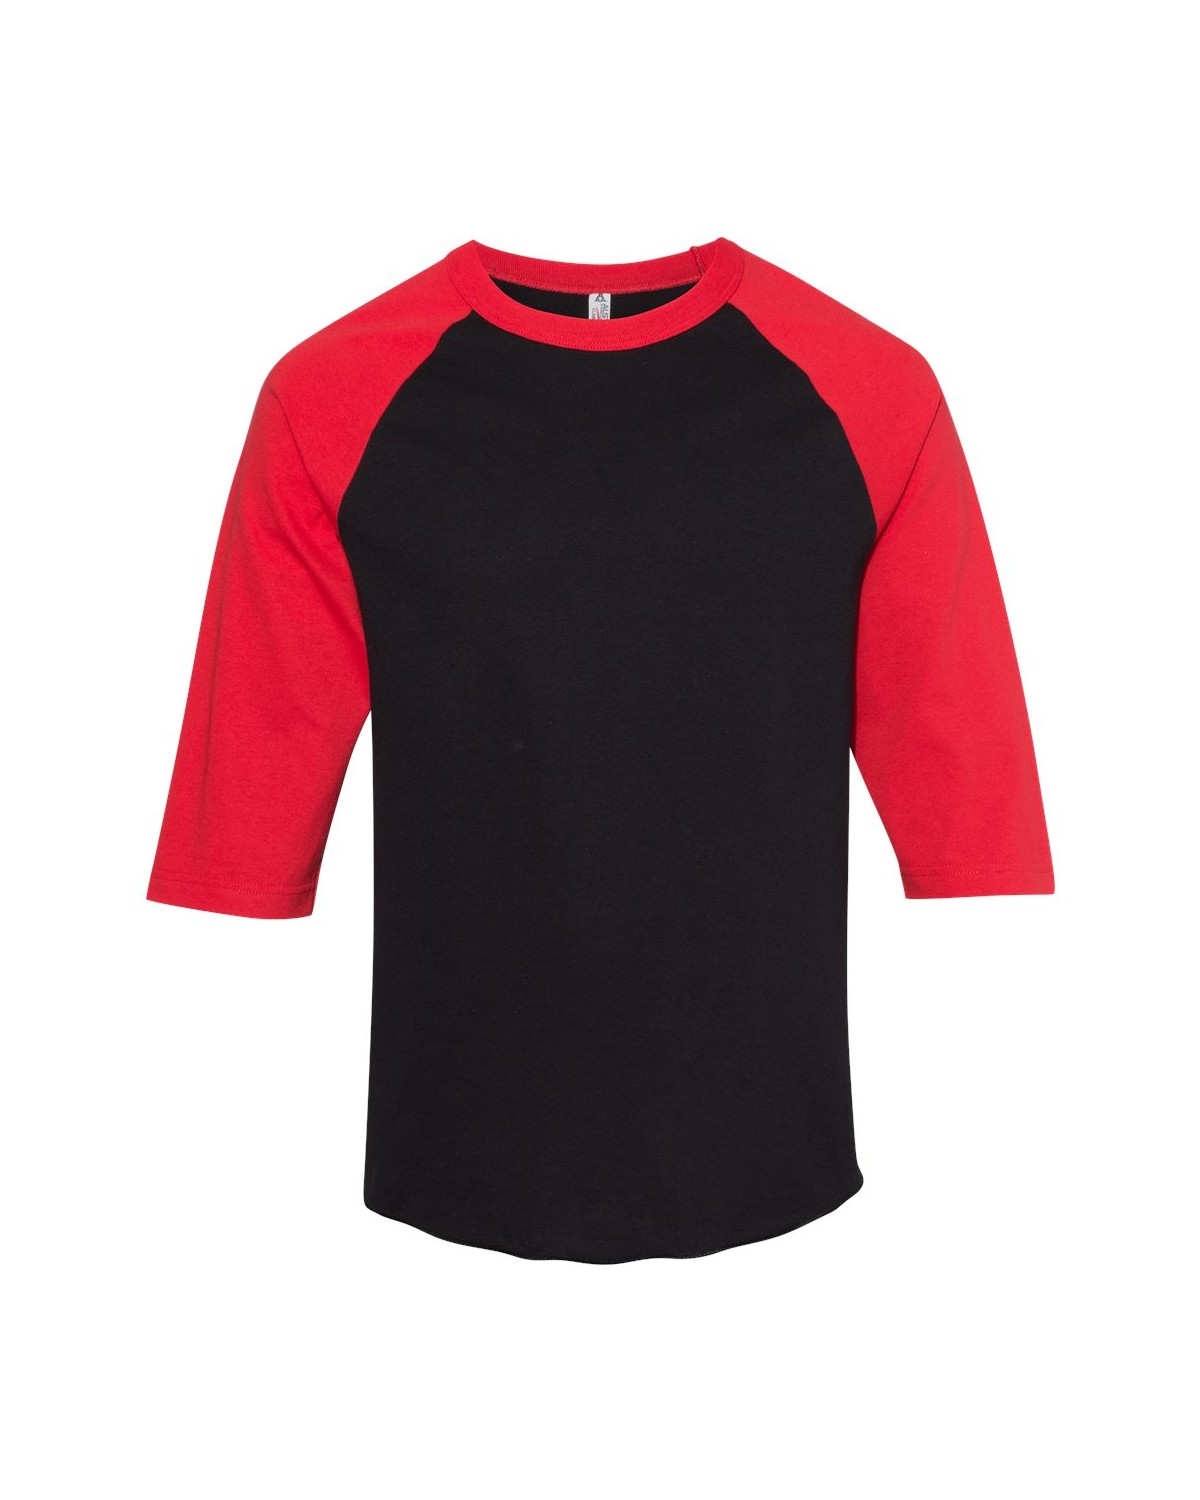 1334 Alstyle BLACK/ RED